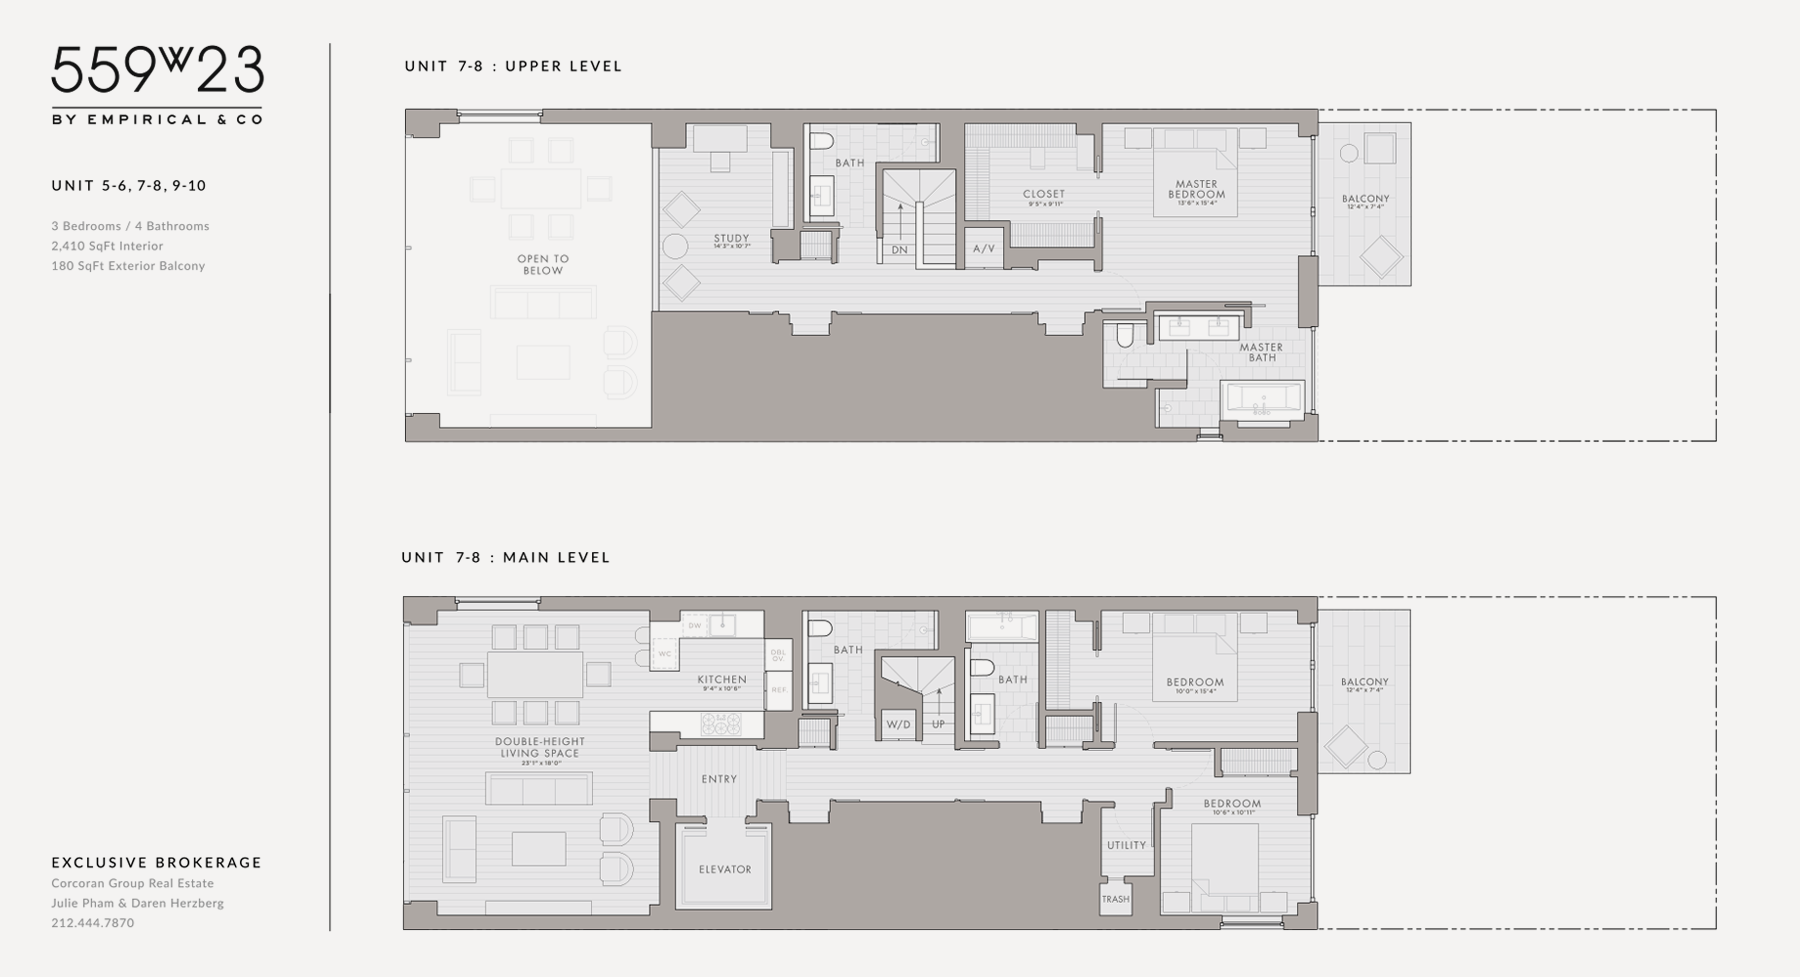 Floor Plans & Elevations : Bringing Graphic Clarity To